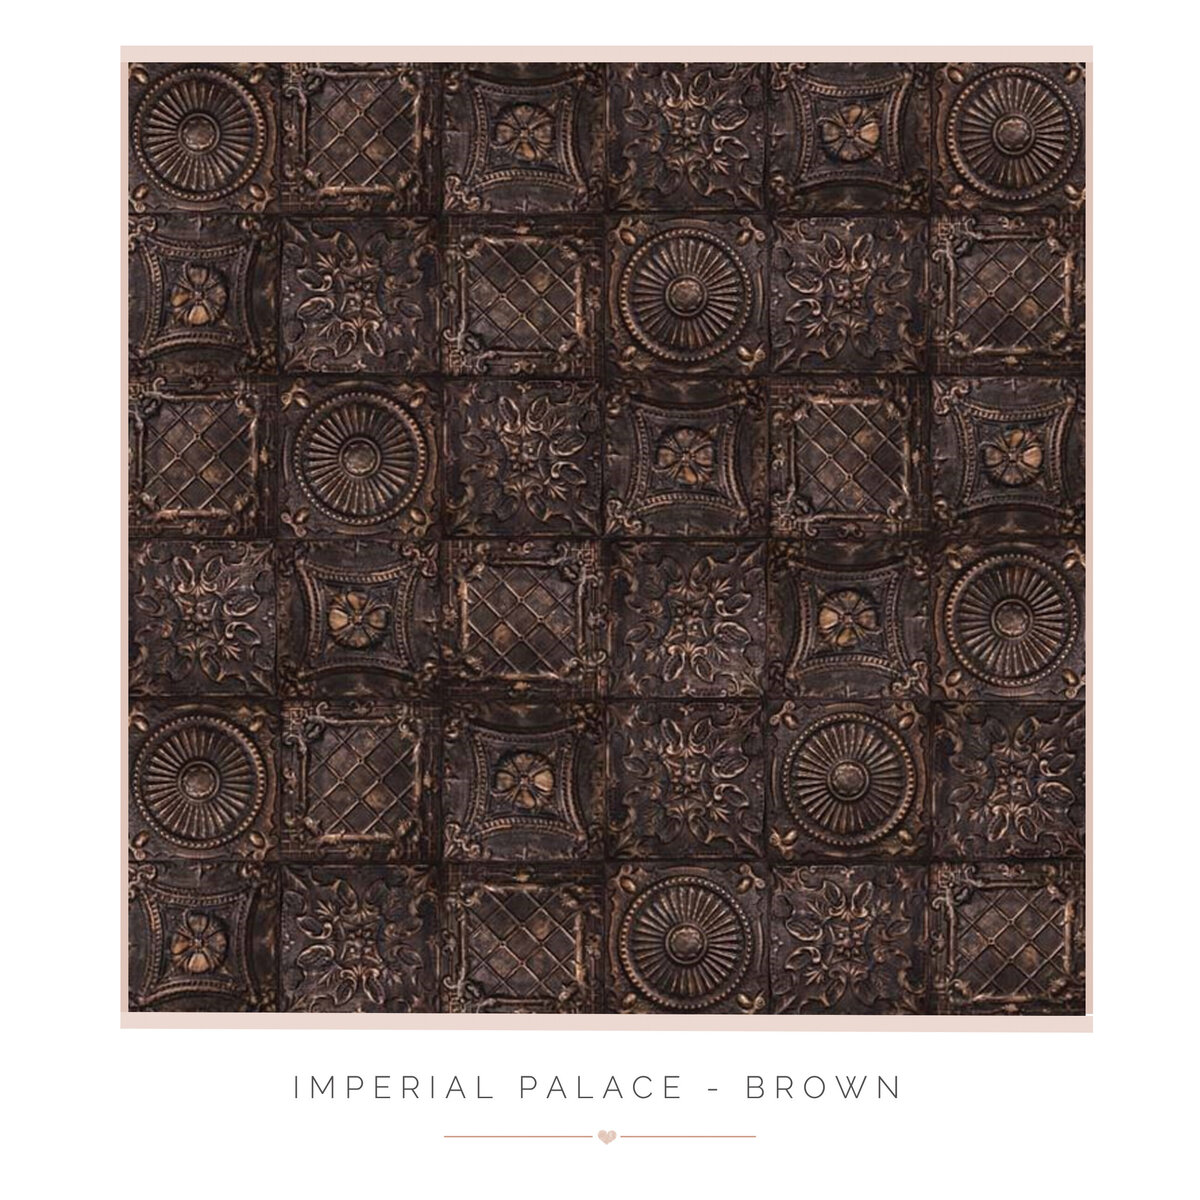 Imperial Palace - Brown